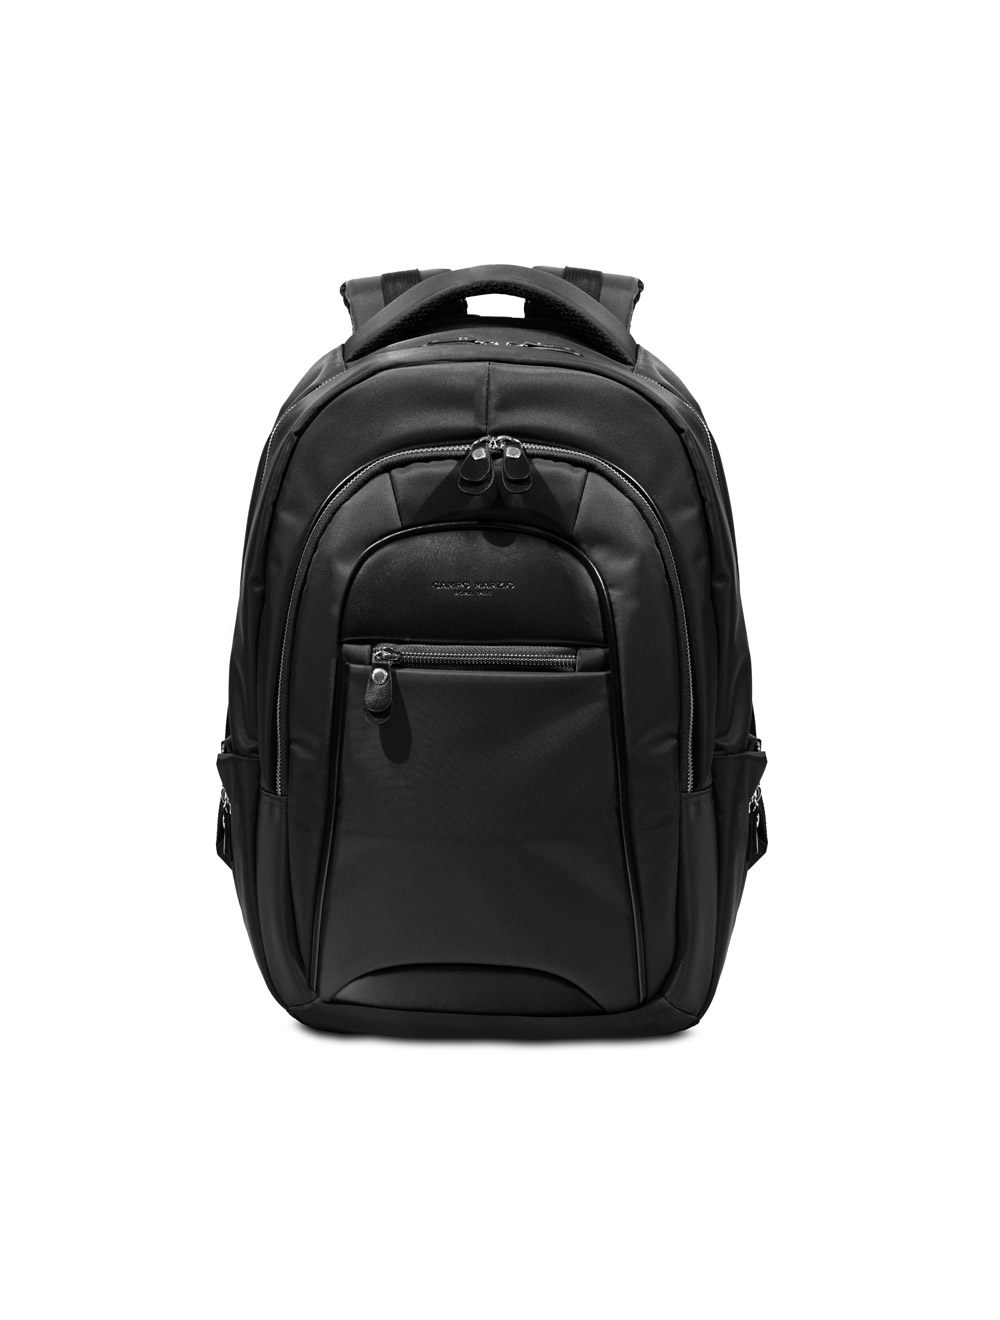 Backpack Maxi Livingstone - Black